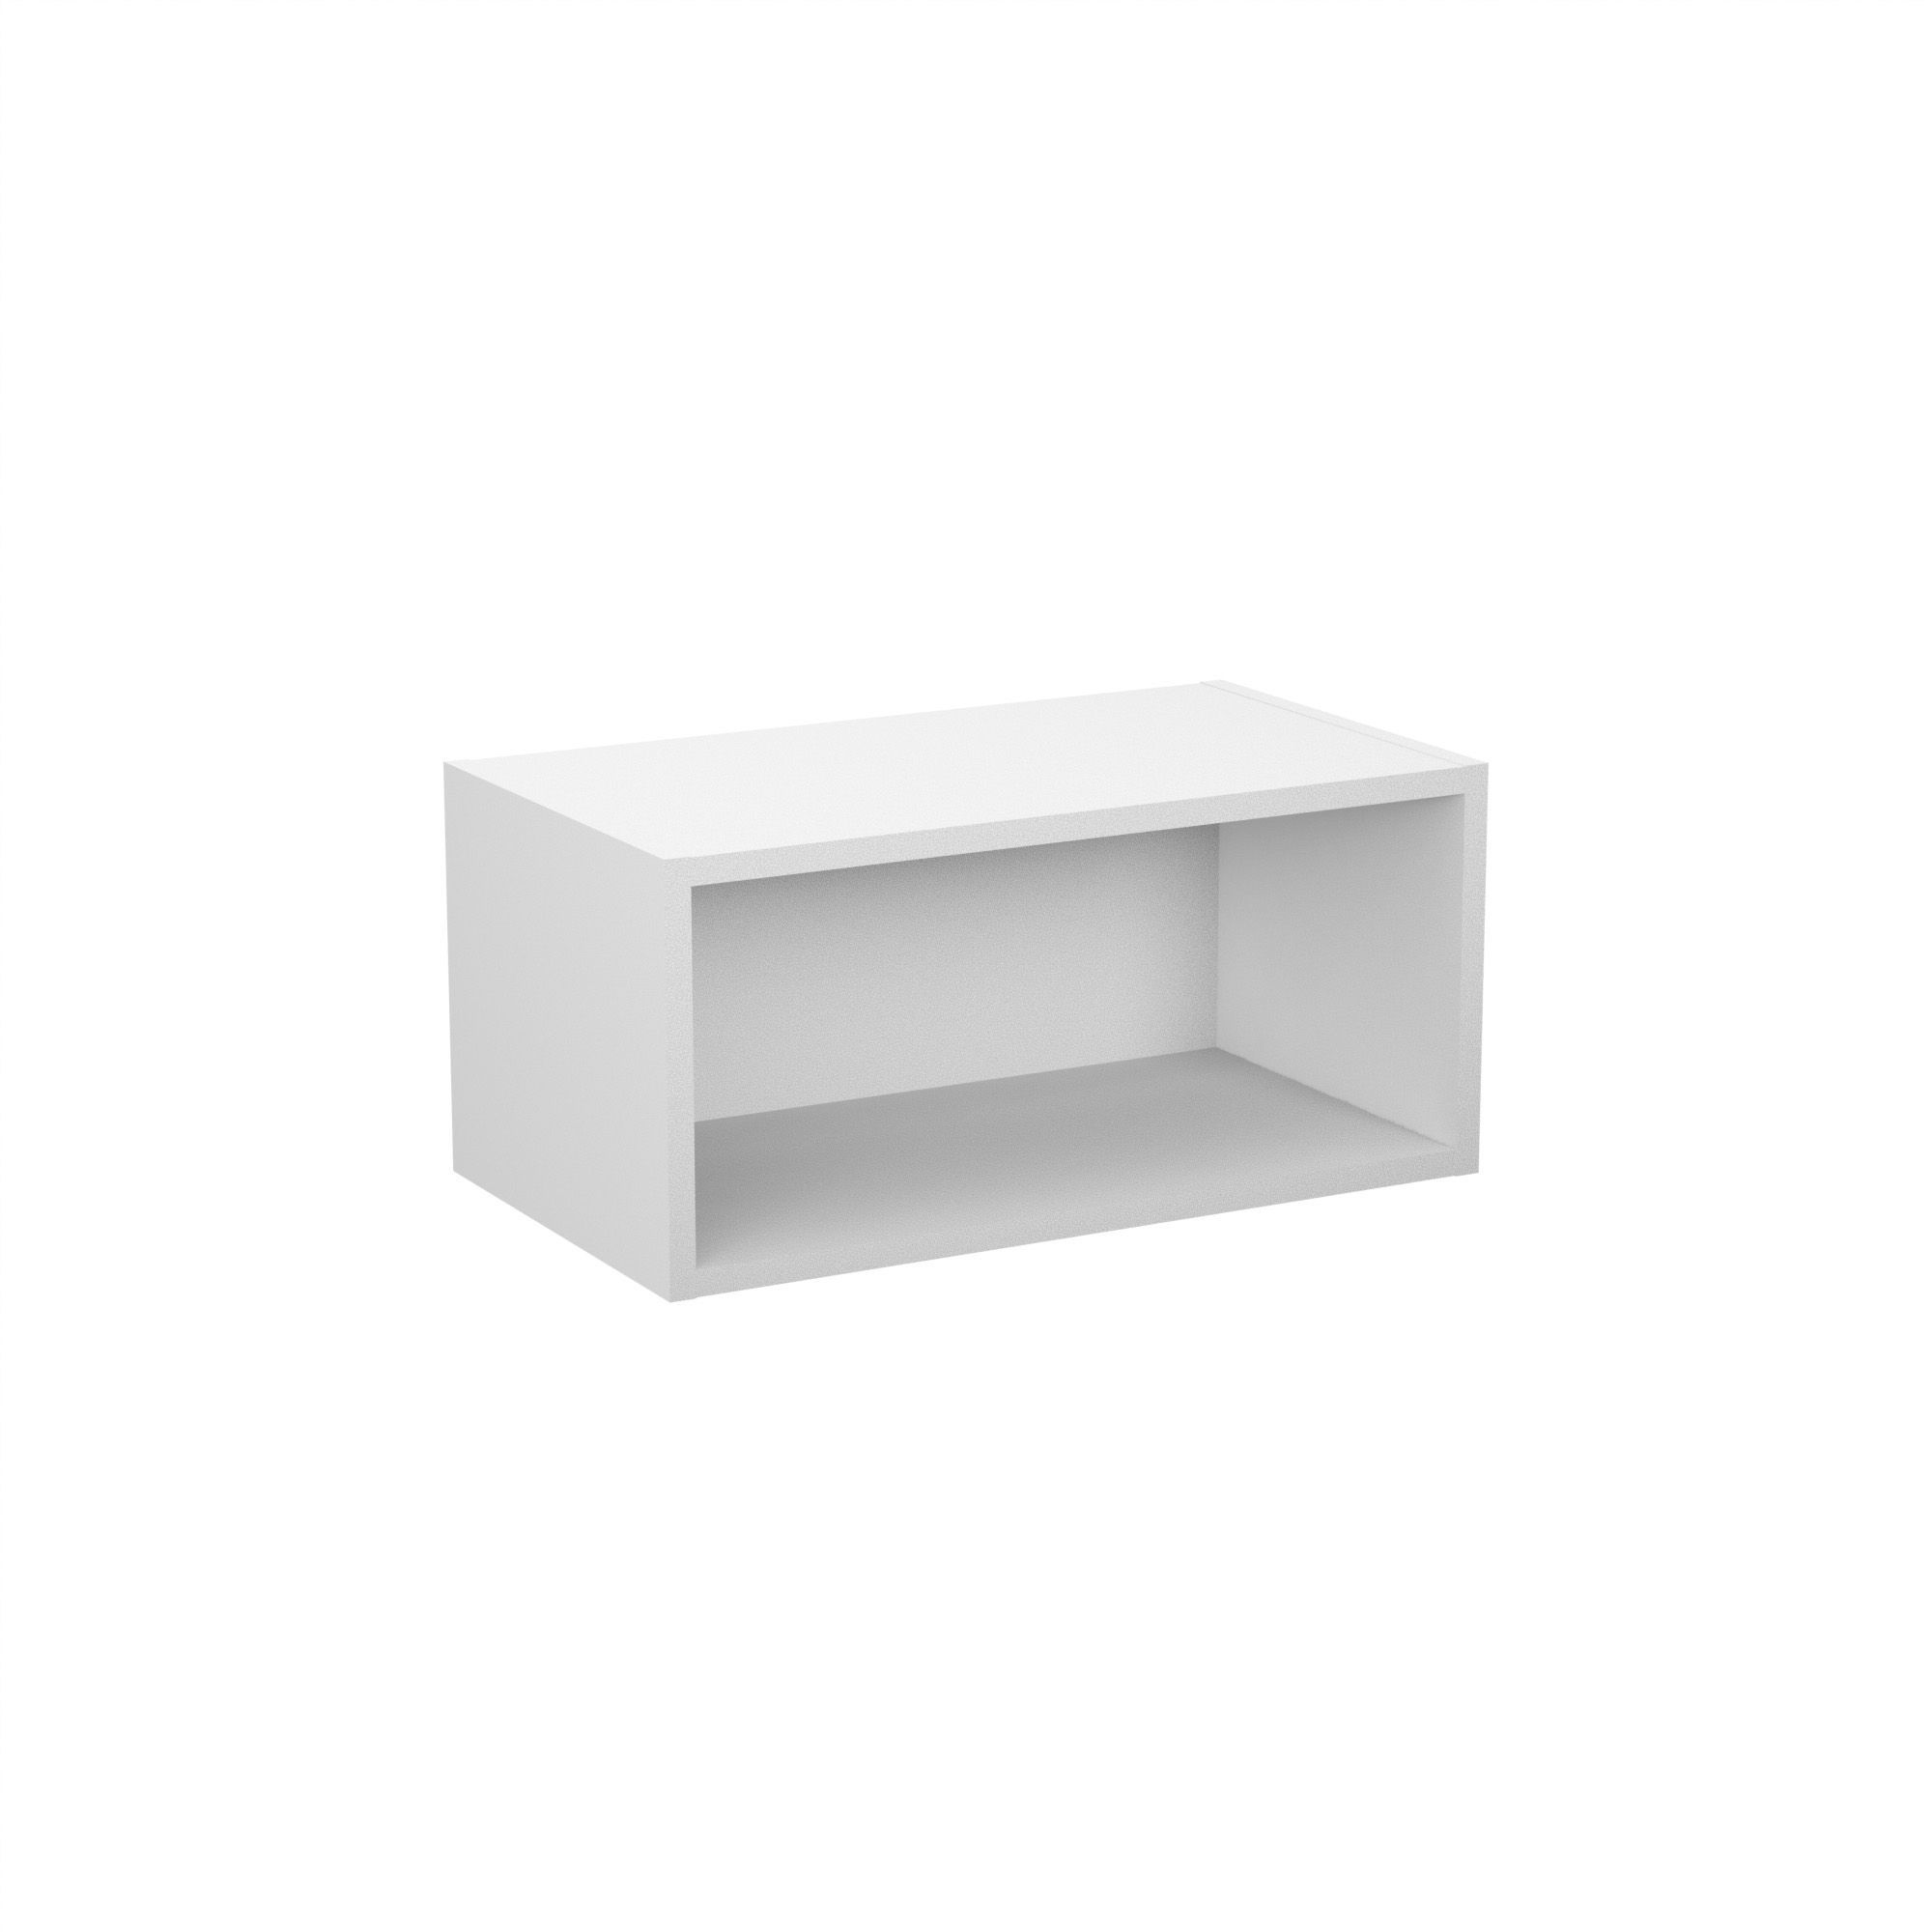 Cooke and lewis clic cabinets mf cabinets for Kitchen bridging units 600mm